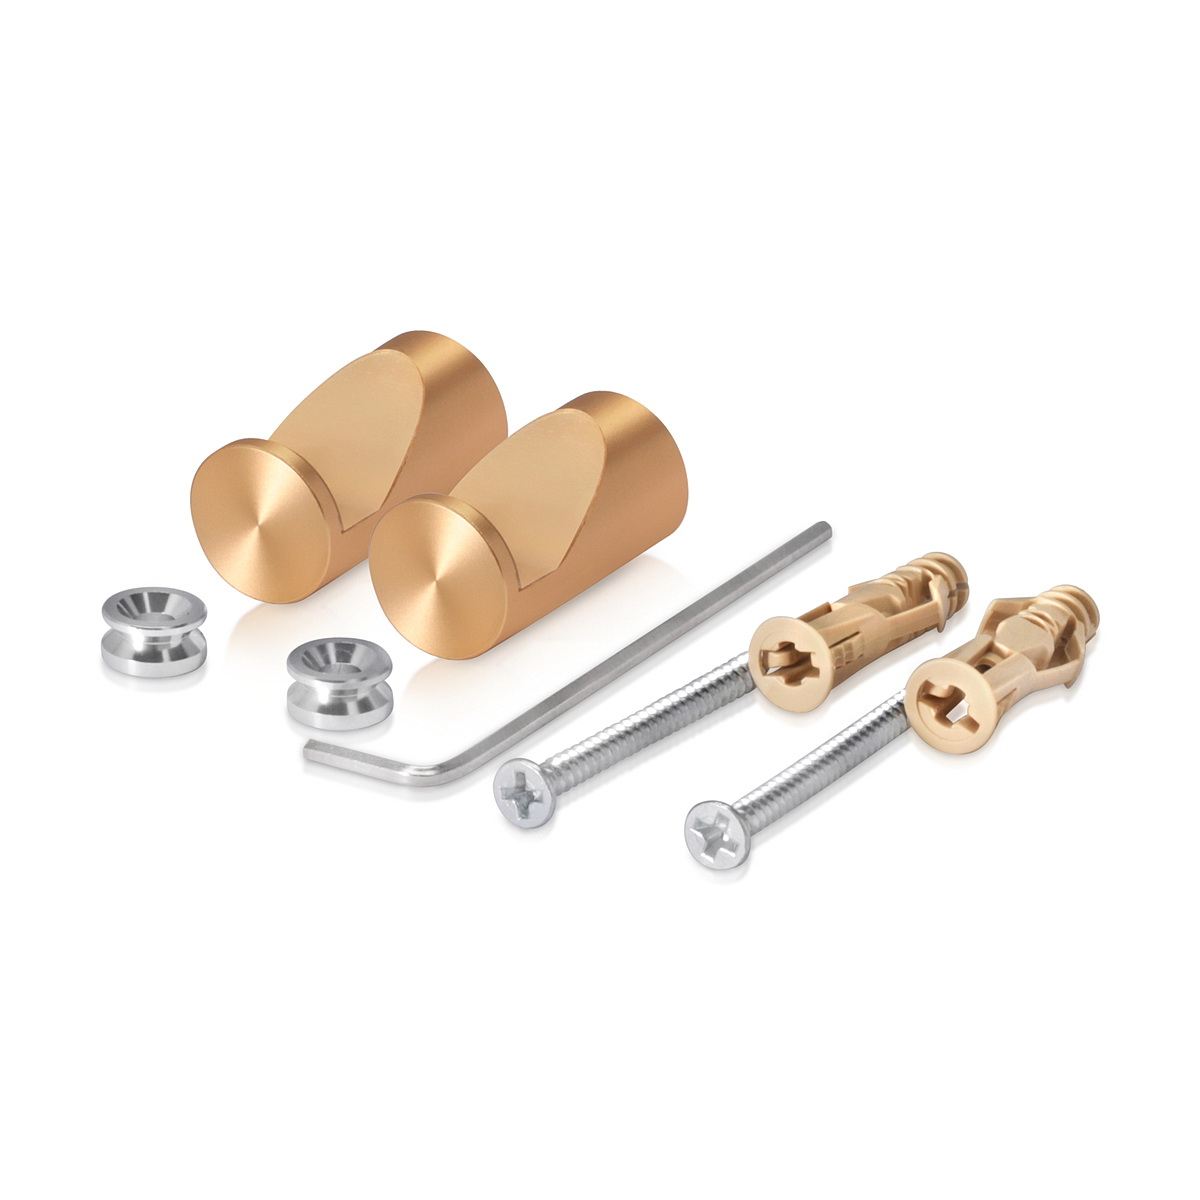 Set of 2 pieces of Cell Phone / Tablet Aluminum Standoffs, Gold Anodized Finish